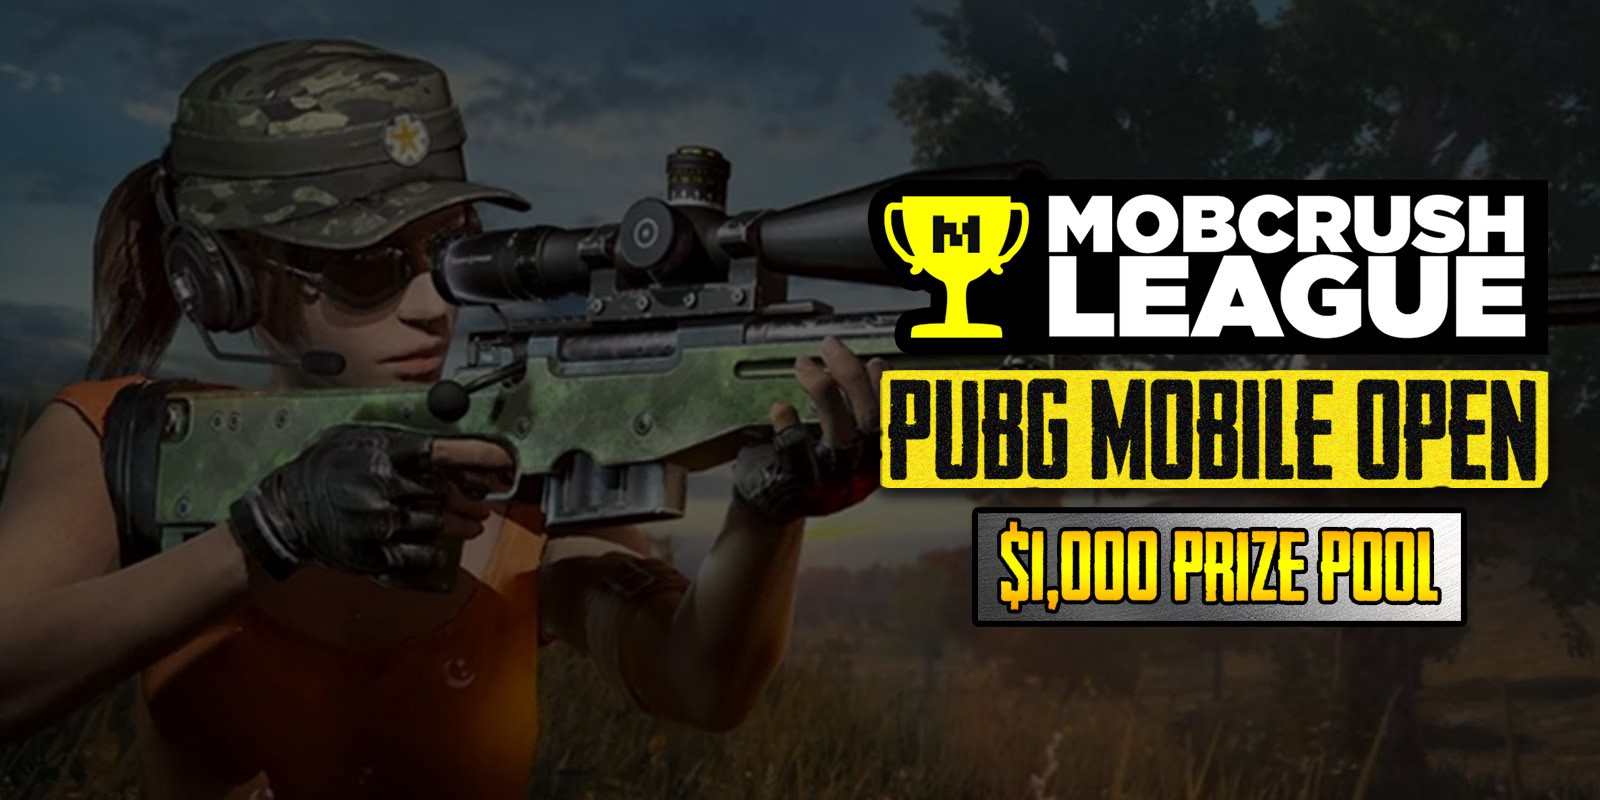 Welcome To The Mobcrush League Are You Ready To Win Your